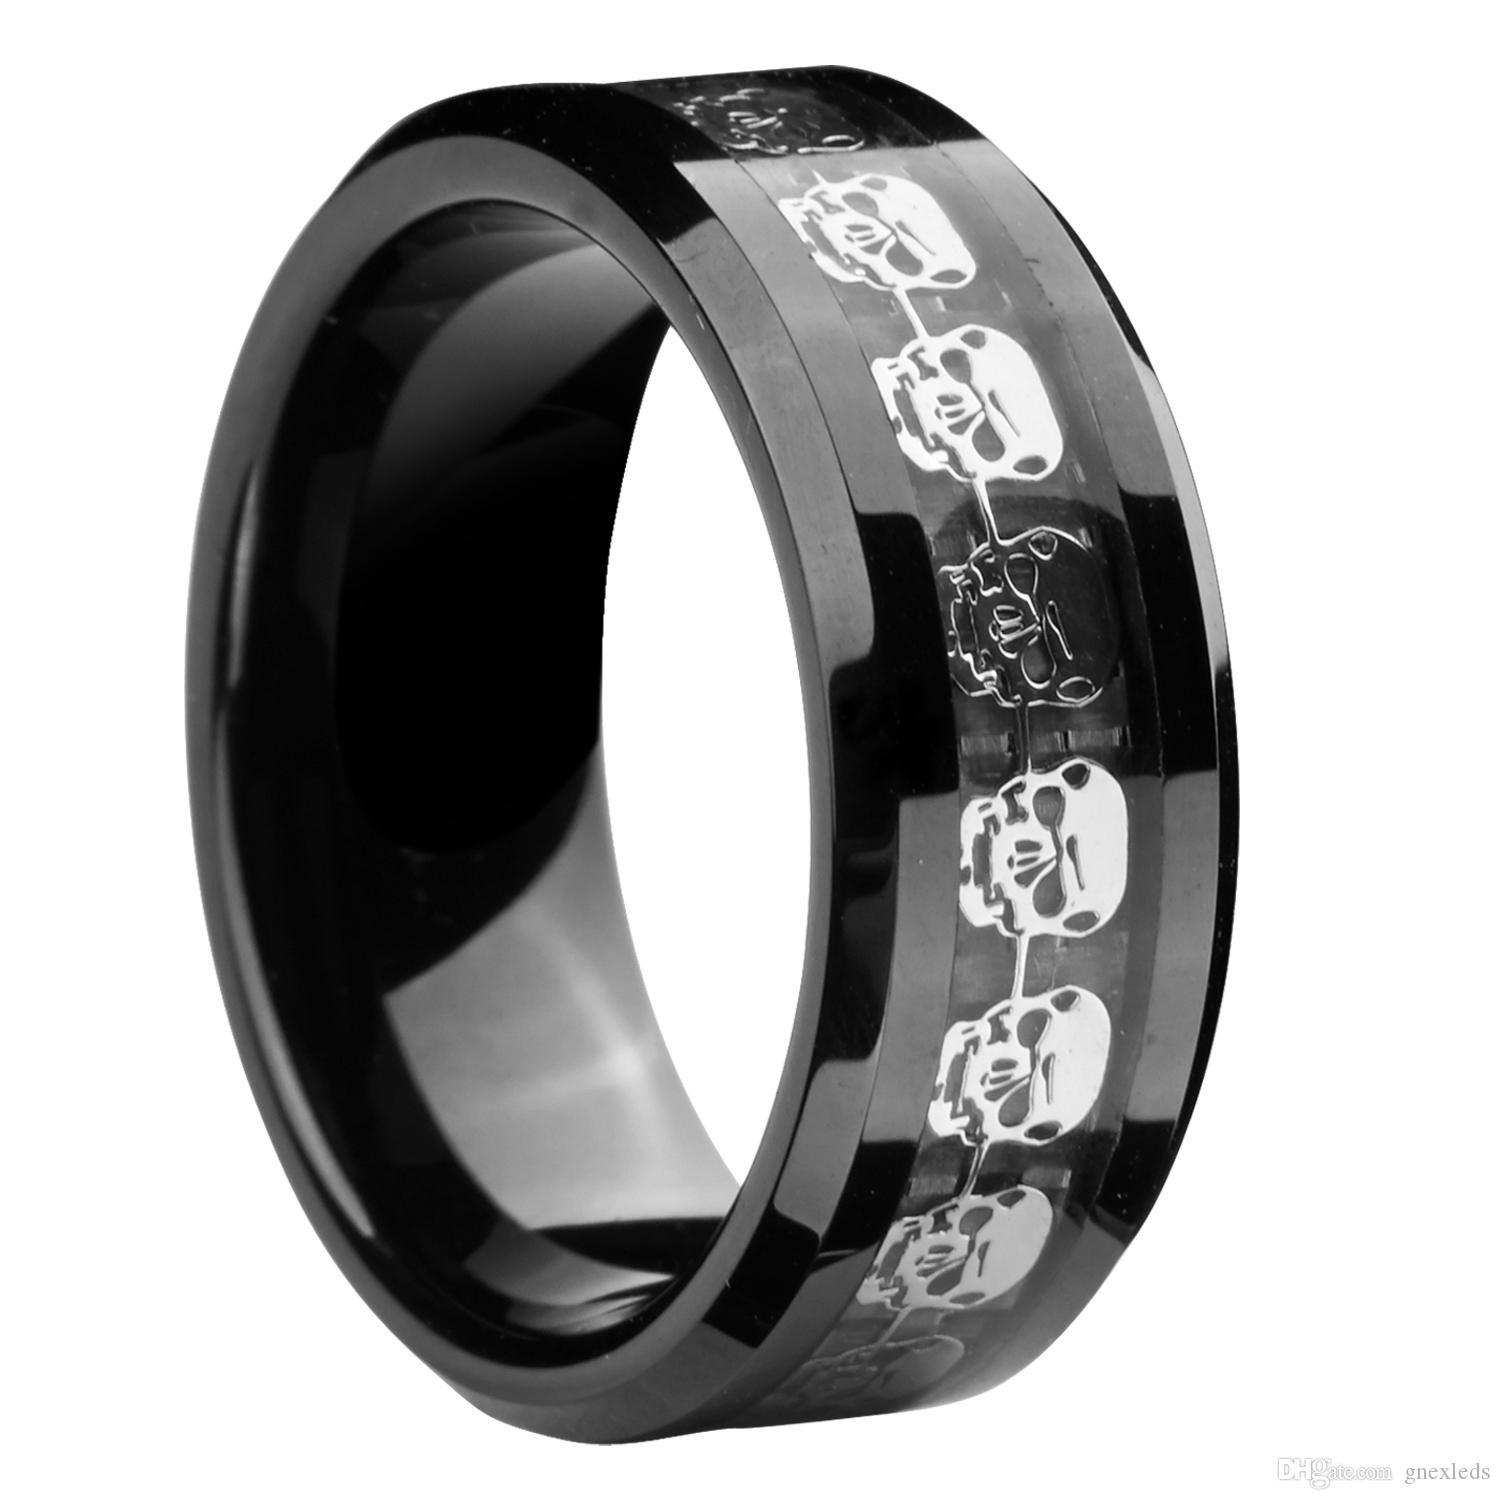 black oliveti carbon men and ring cubic watches wedding shipping mens s zirconia overstock over comfort rings free orders jewelry product with fiber titanium dragon design on band fit